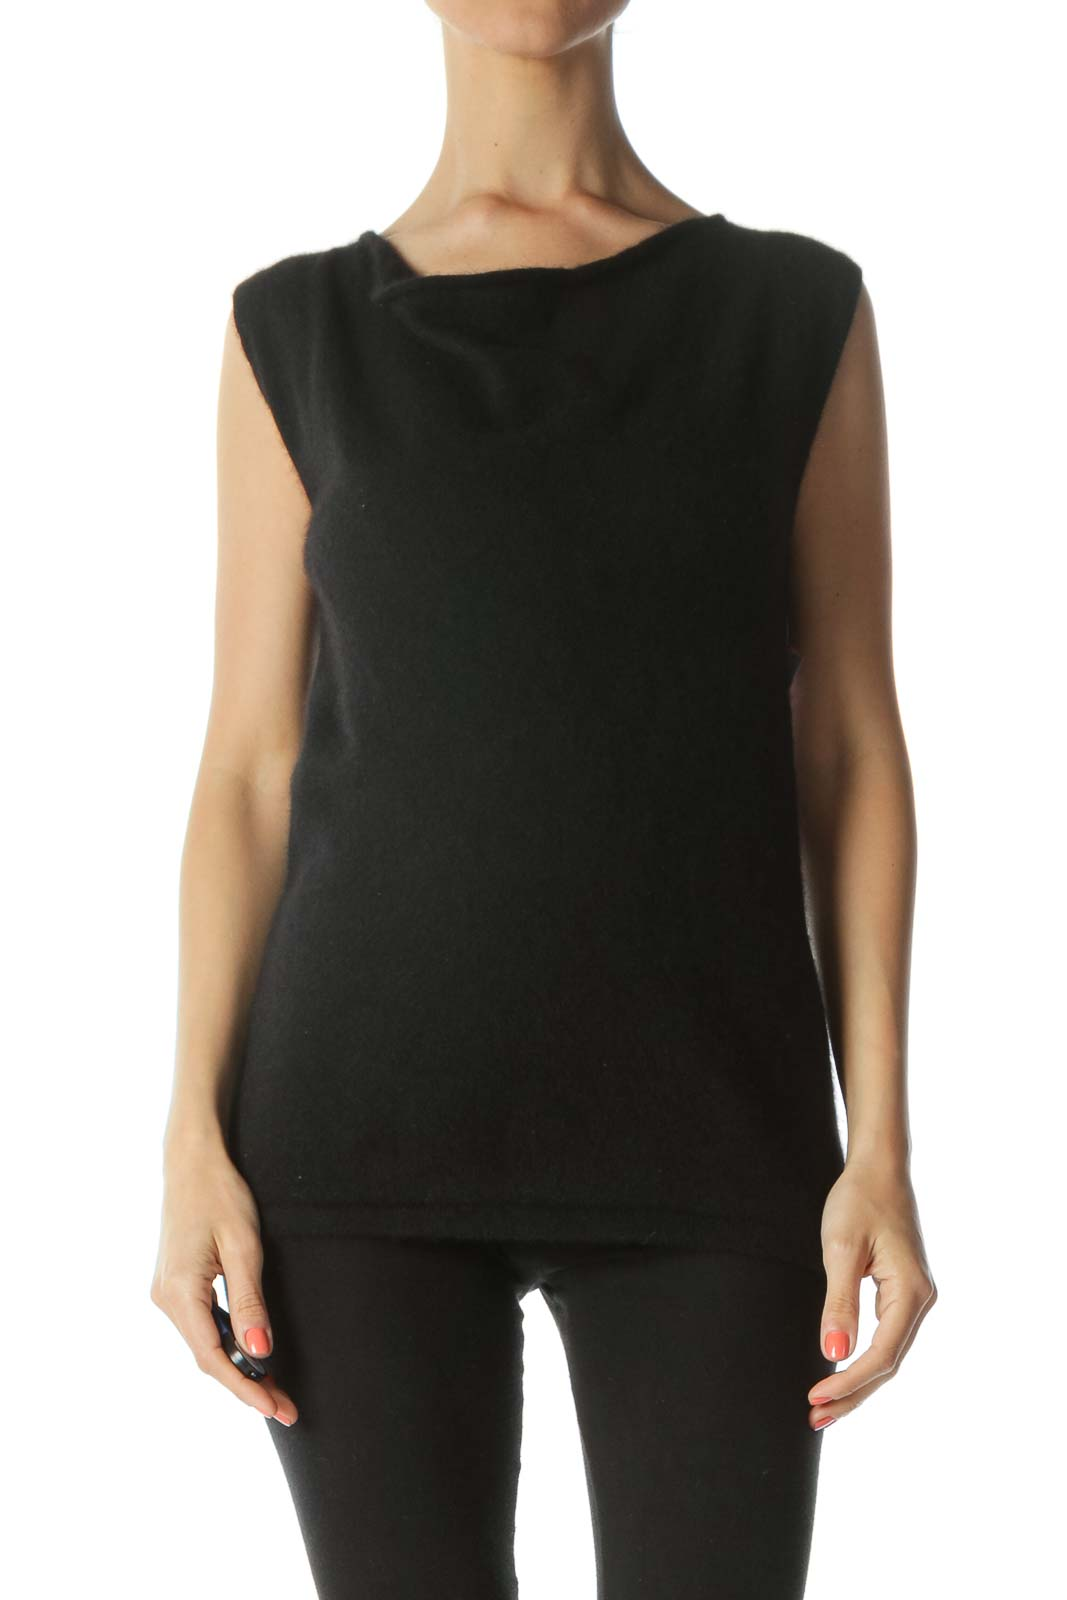 Black Cashmere Soft Cowl-Neck Sleeveless Tank Top